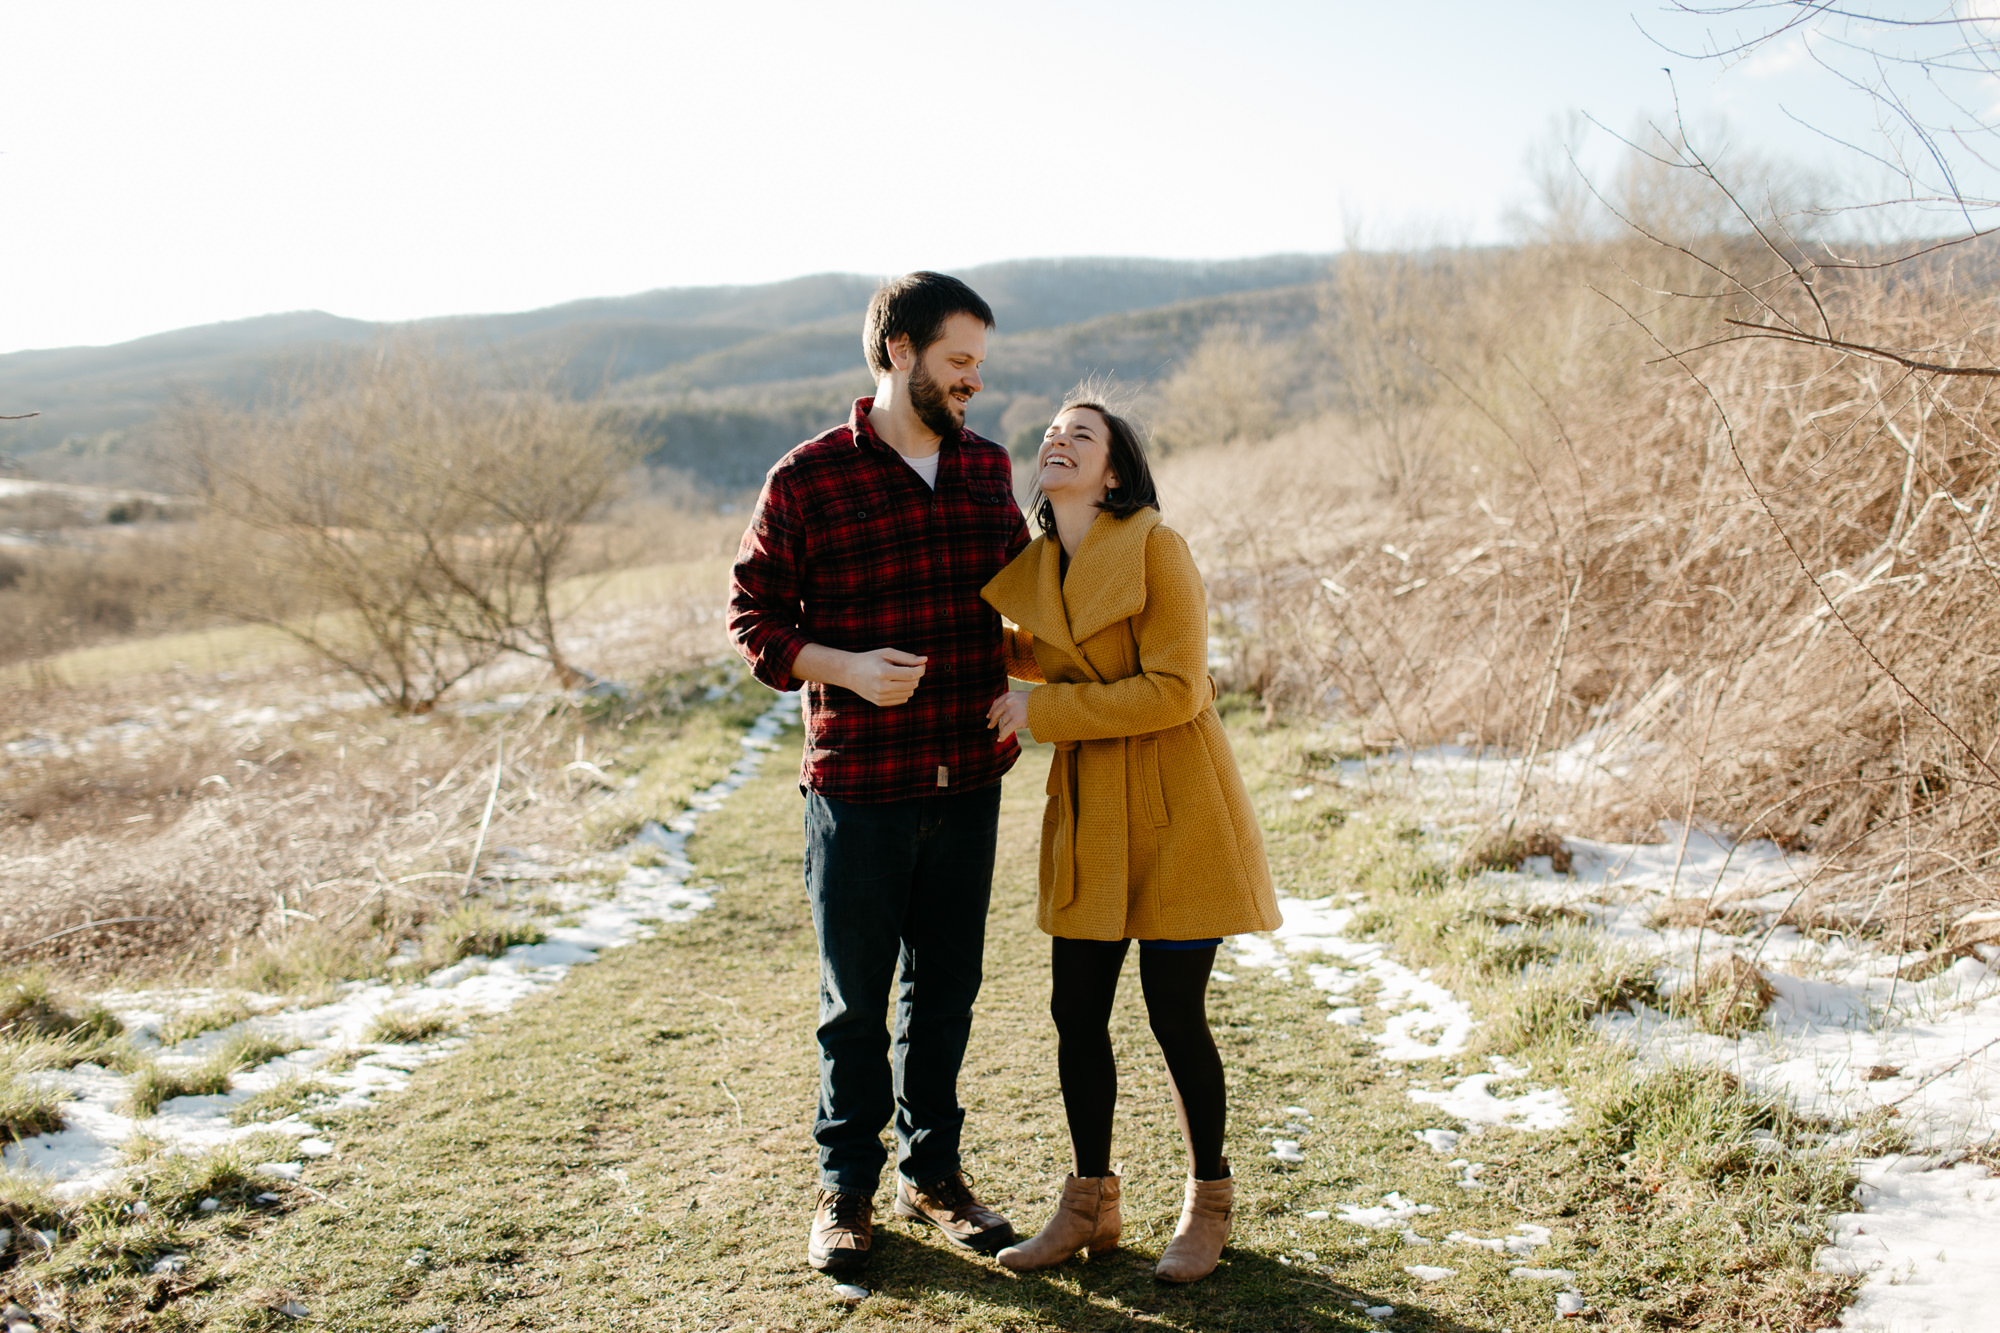 Heritage Park Engagement Photos - Of Fate and Chaos Wedding Photography